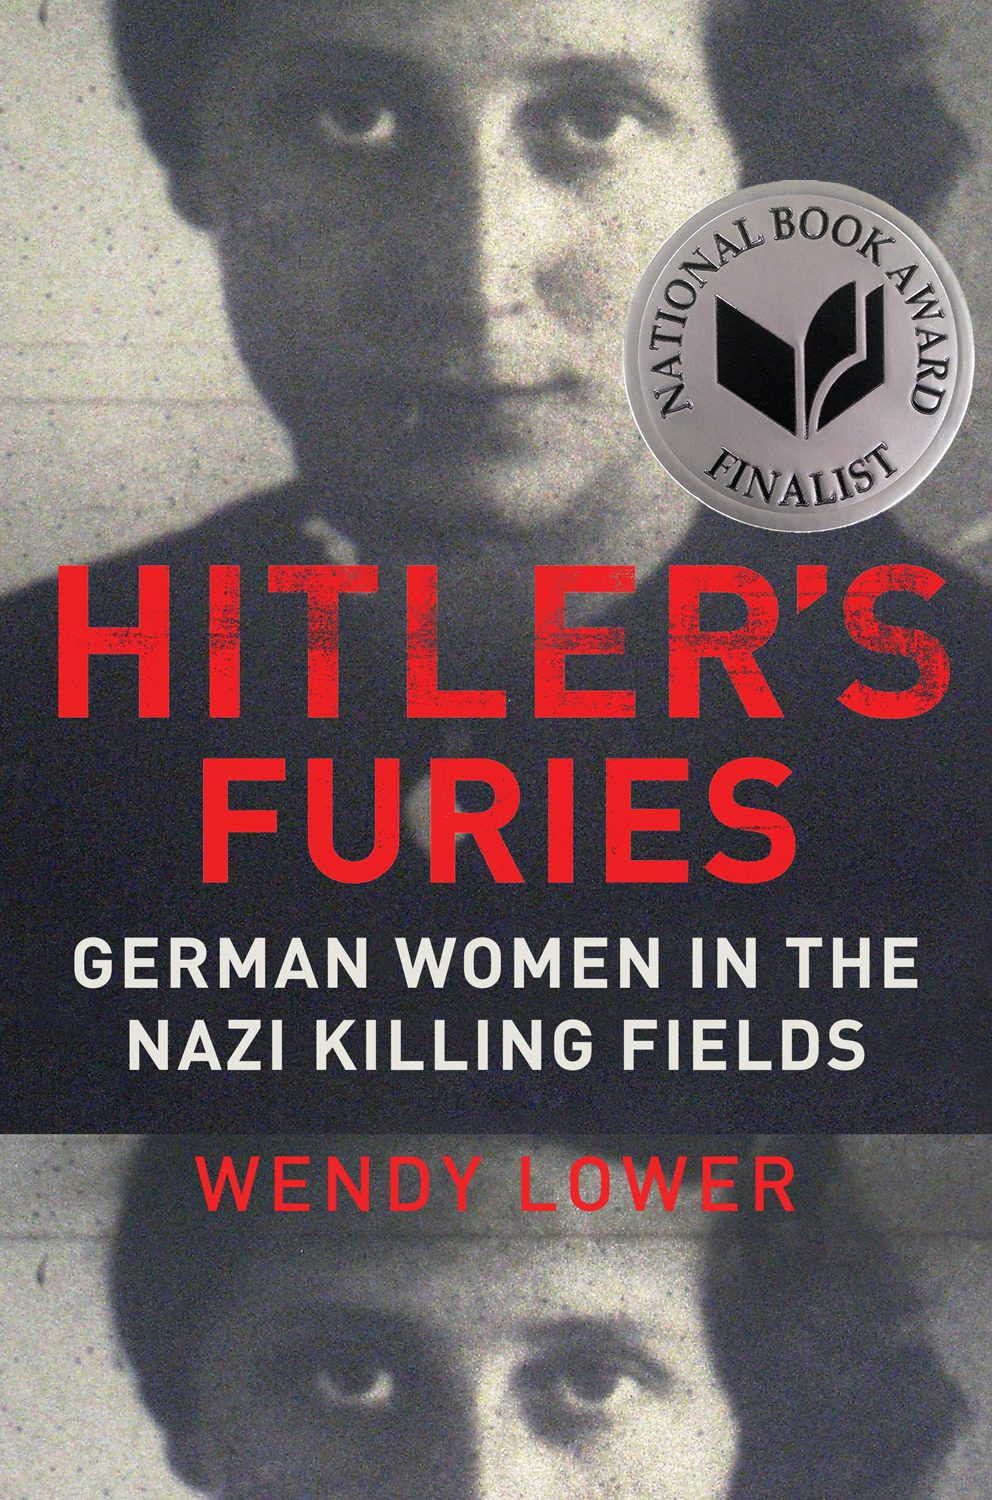 Hitler's Furies: German Women in the Nazi Killing Fields by Wendy Lower, book cover, 2013